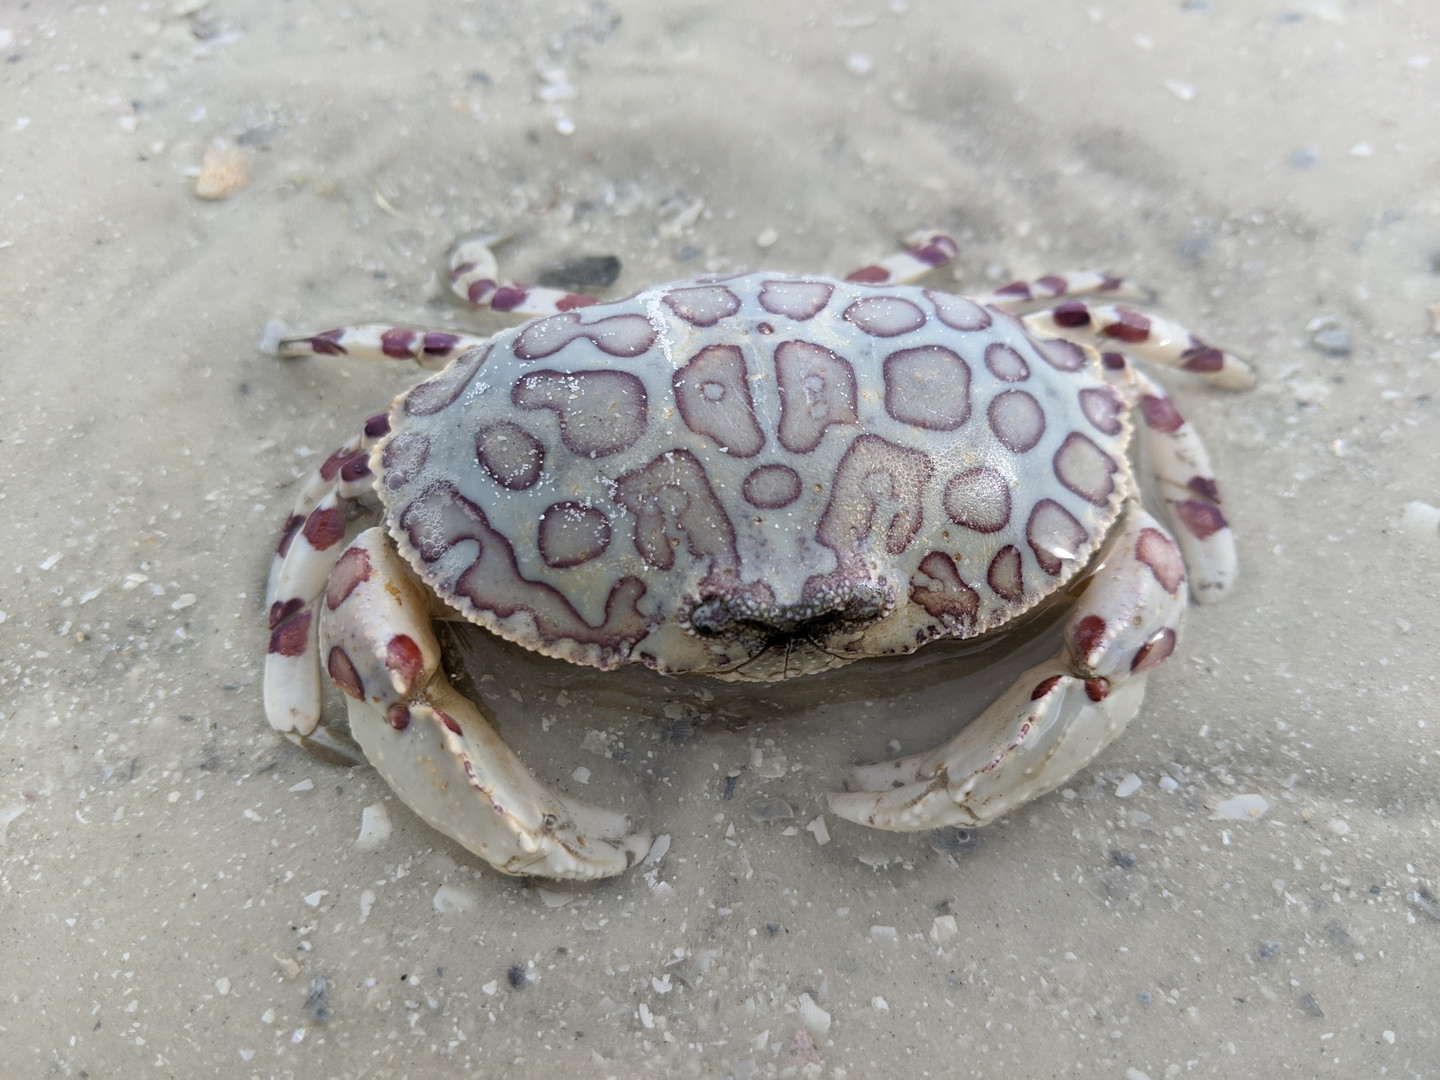 Discover Leapord Crab in the Ten Thousand Islands